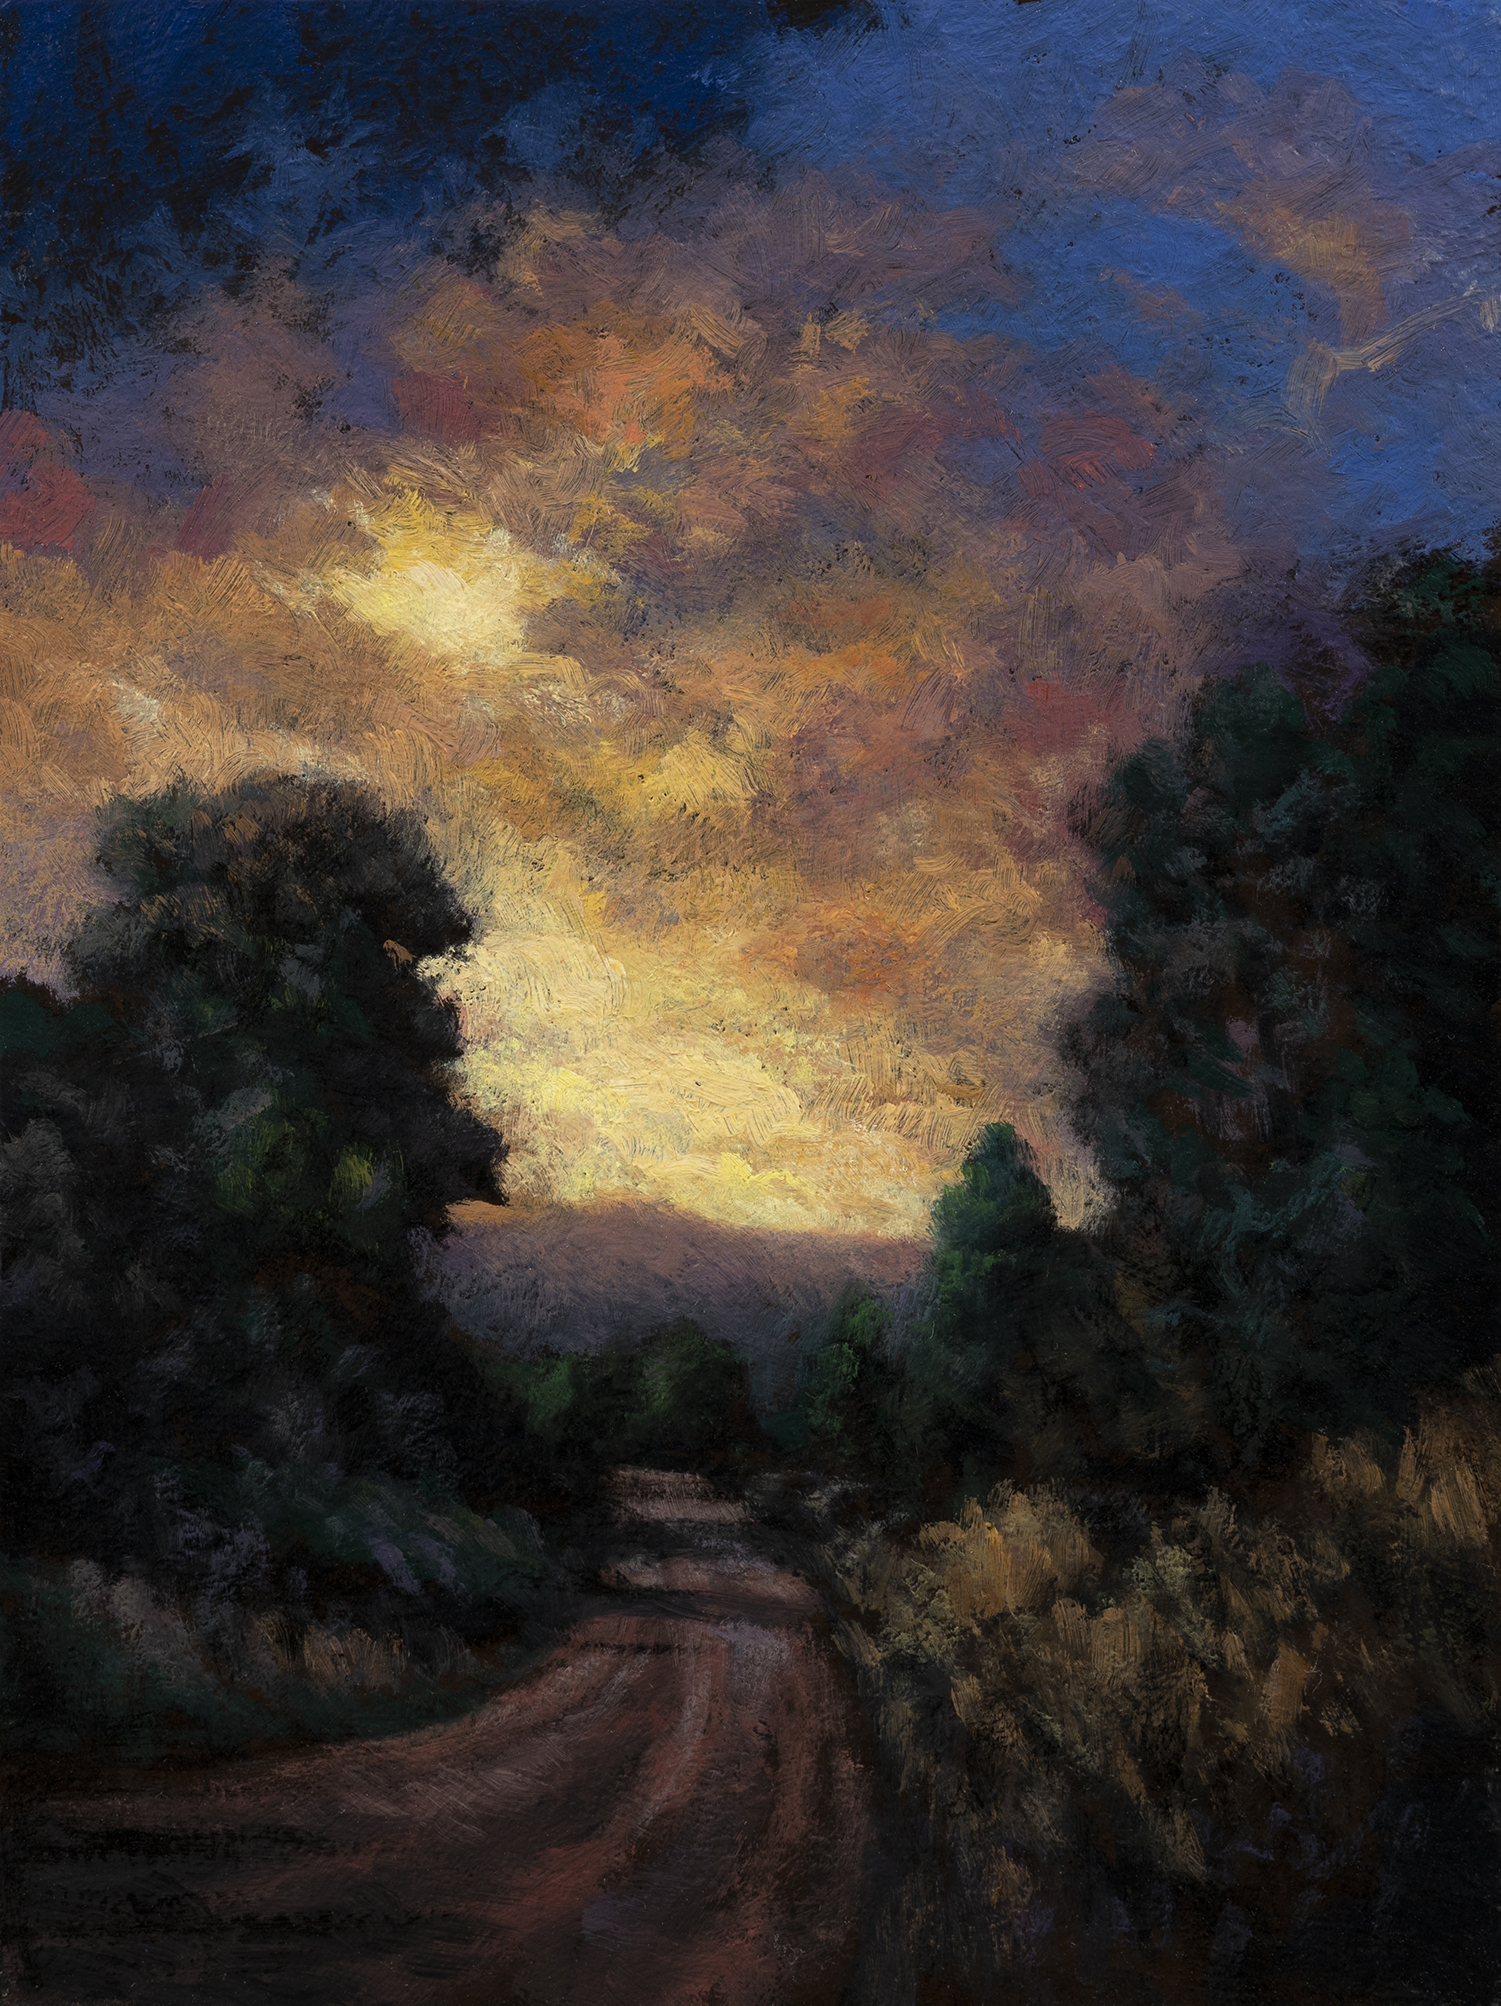 Light through the Storm by M Francis McCarthy - 6x8 Oil on Wood Panel